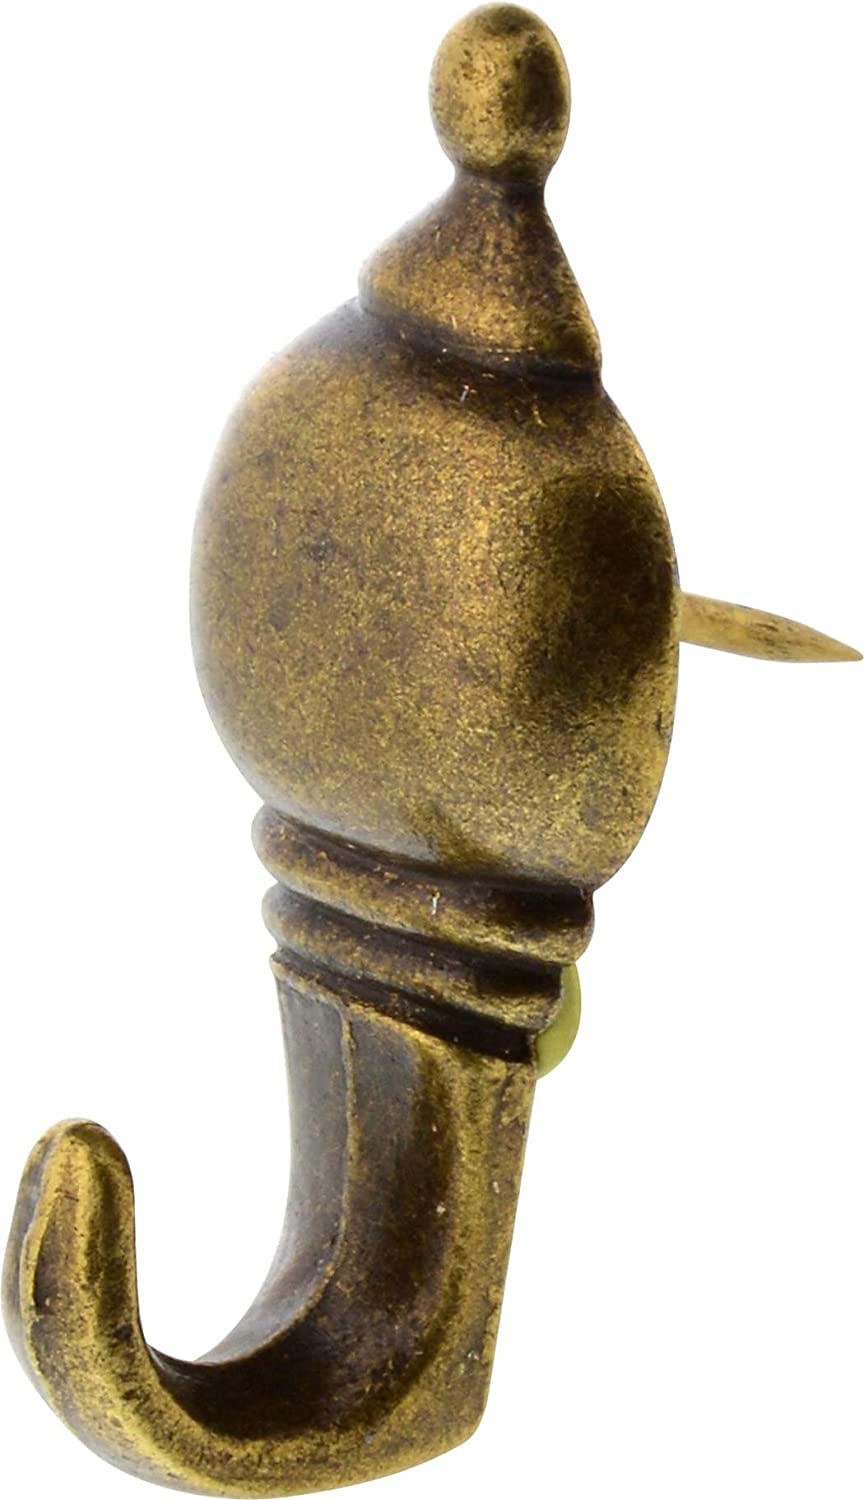 Amazon.com: Hillman Colonial Push Pin Hanger Antique Brass 10lb: Home Improvement